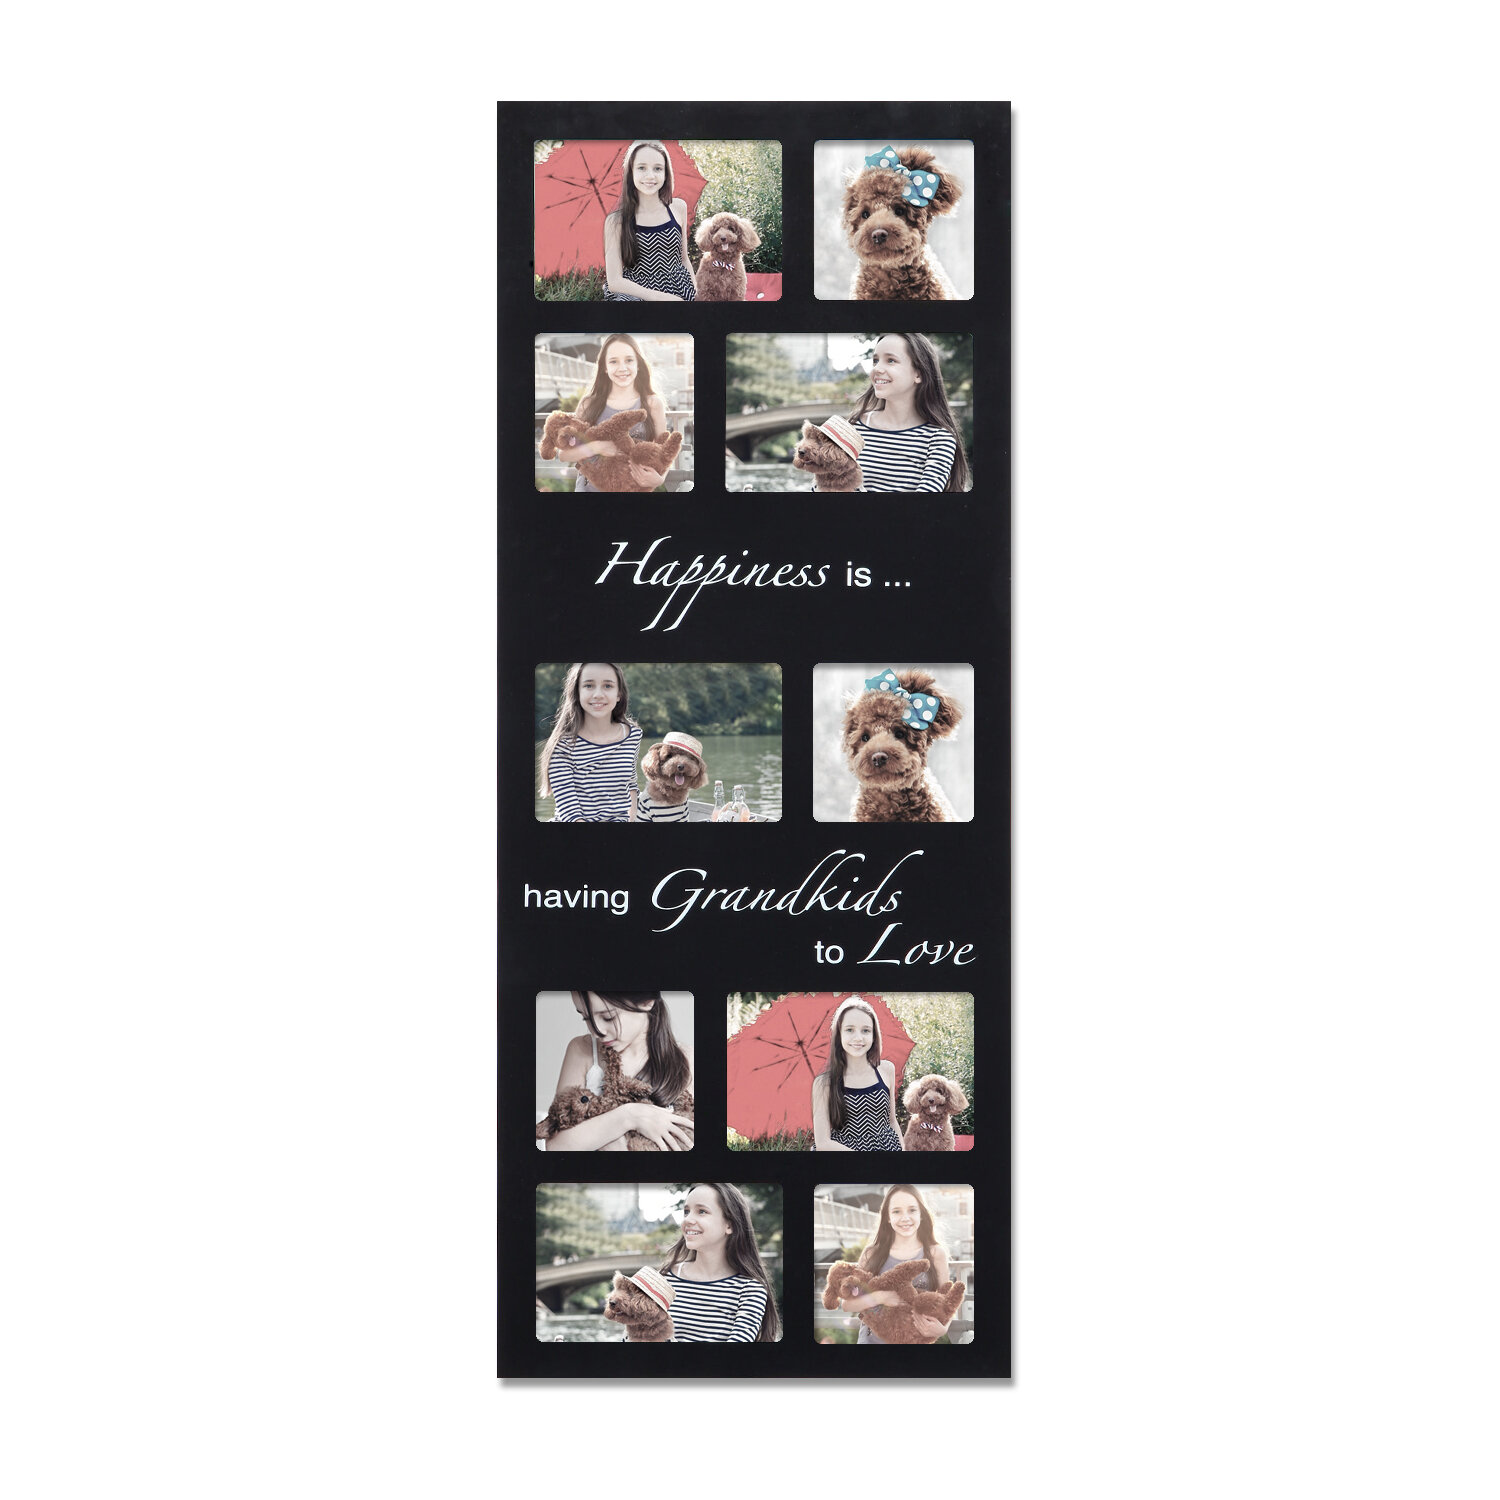 Adecotrading 10 opening decorative happiness is wall hanging adecotrading 10 opening decorative happiness is wall hanging collage picture frame reviews wayfair jeuxipadfo Image collections